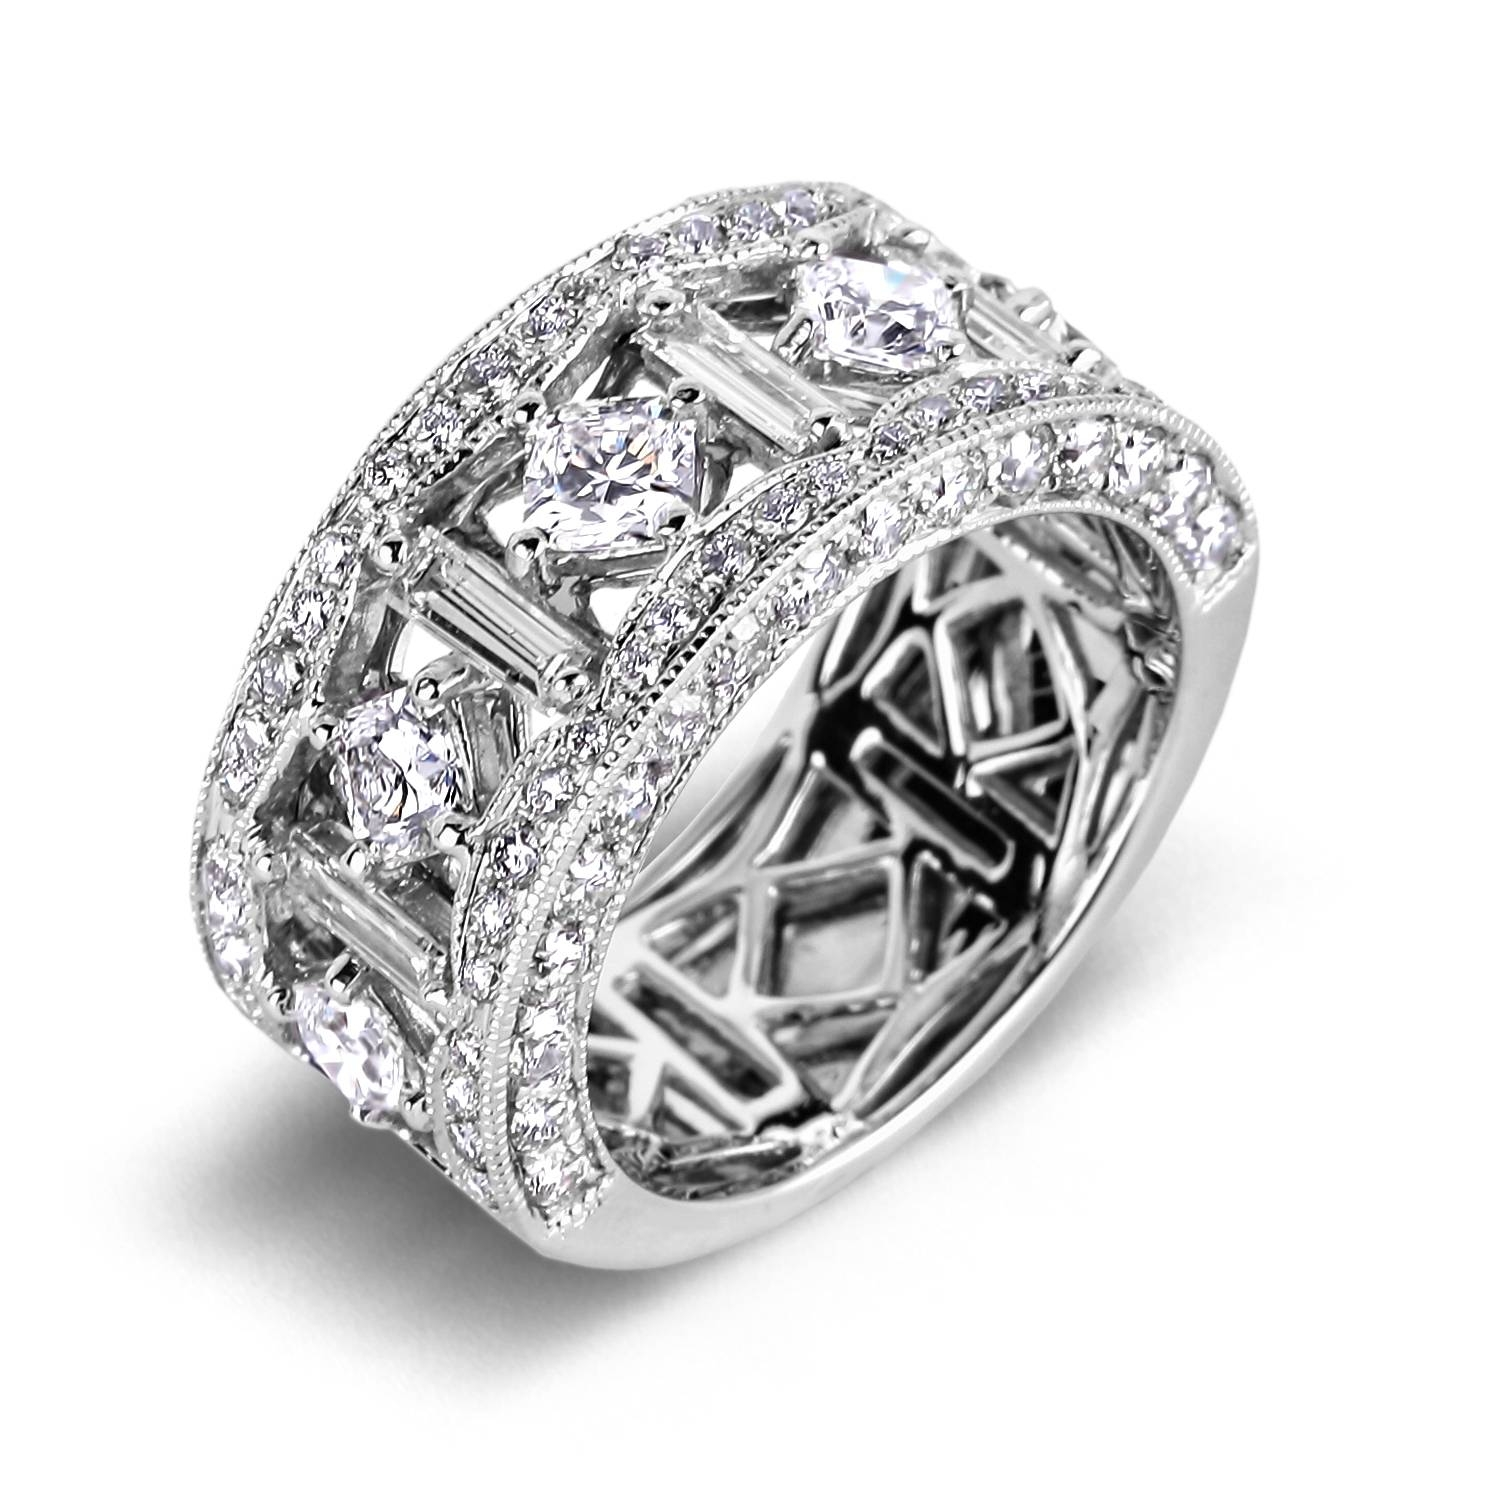 Wedding Anniversary Rings Diamonds | Wedding Ideas Within Most Up To Date Diamond Wedding Anniversary Rings (Gallery 6 of 25)